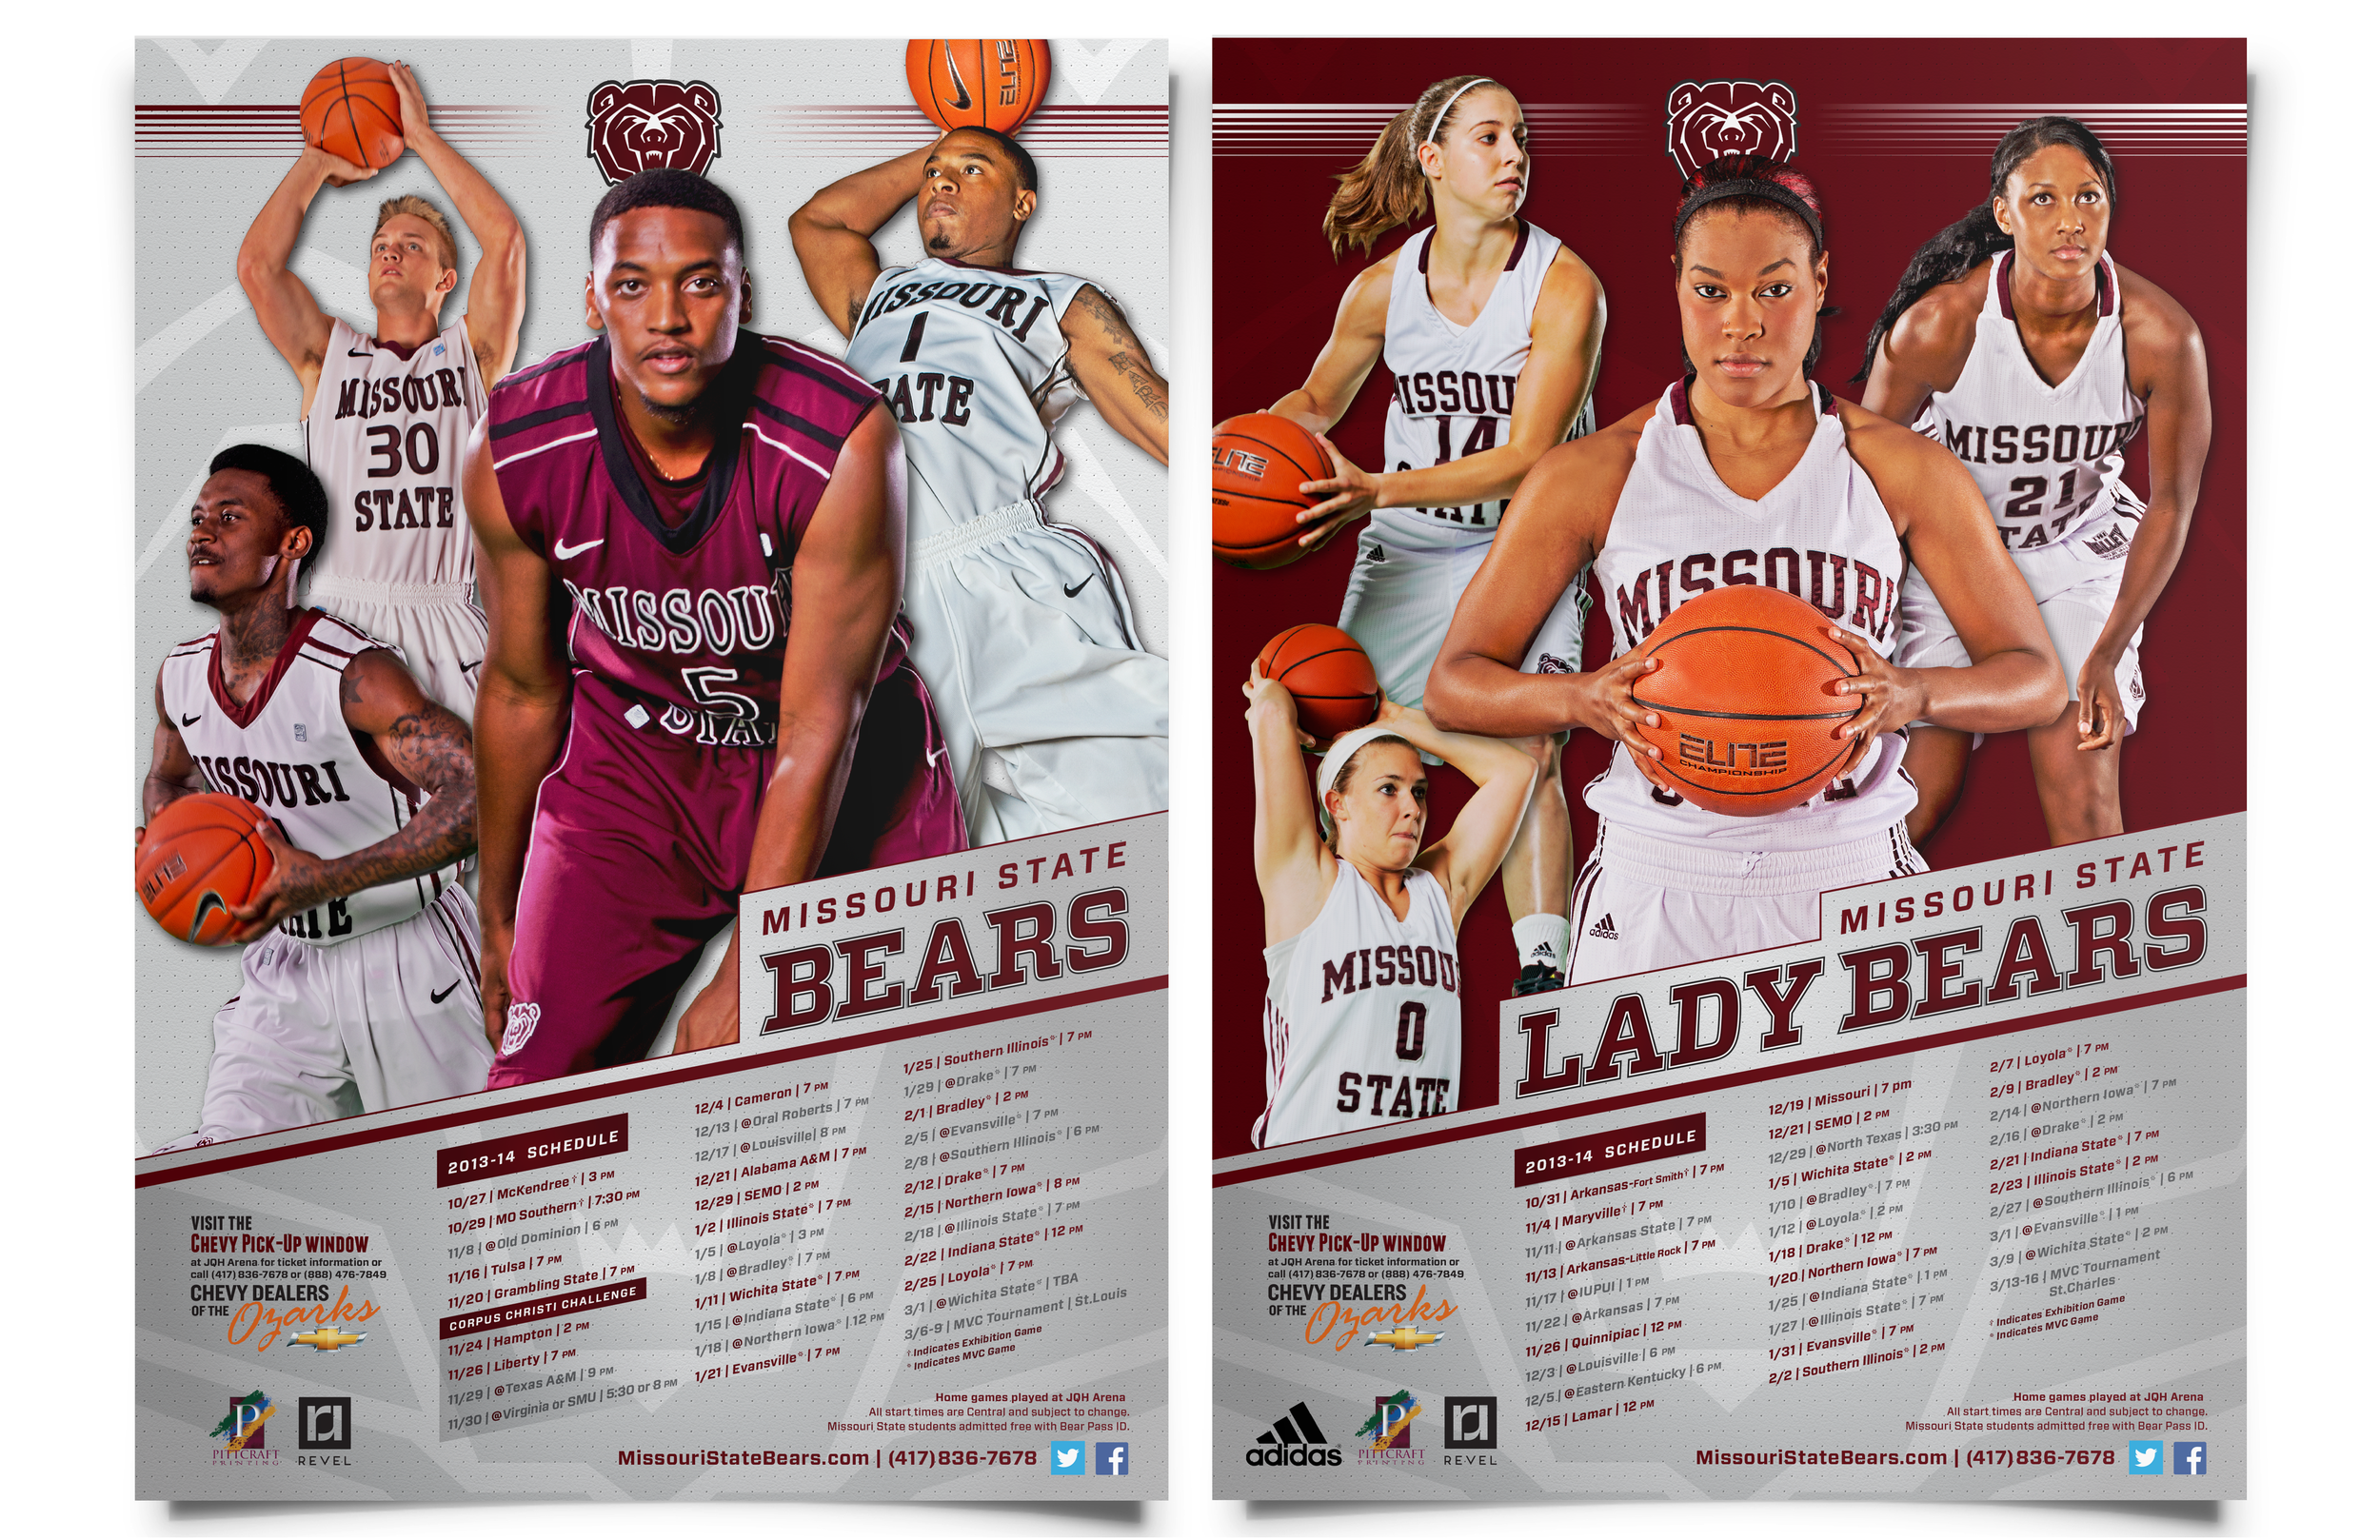 2013-14 Basketball Posters